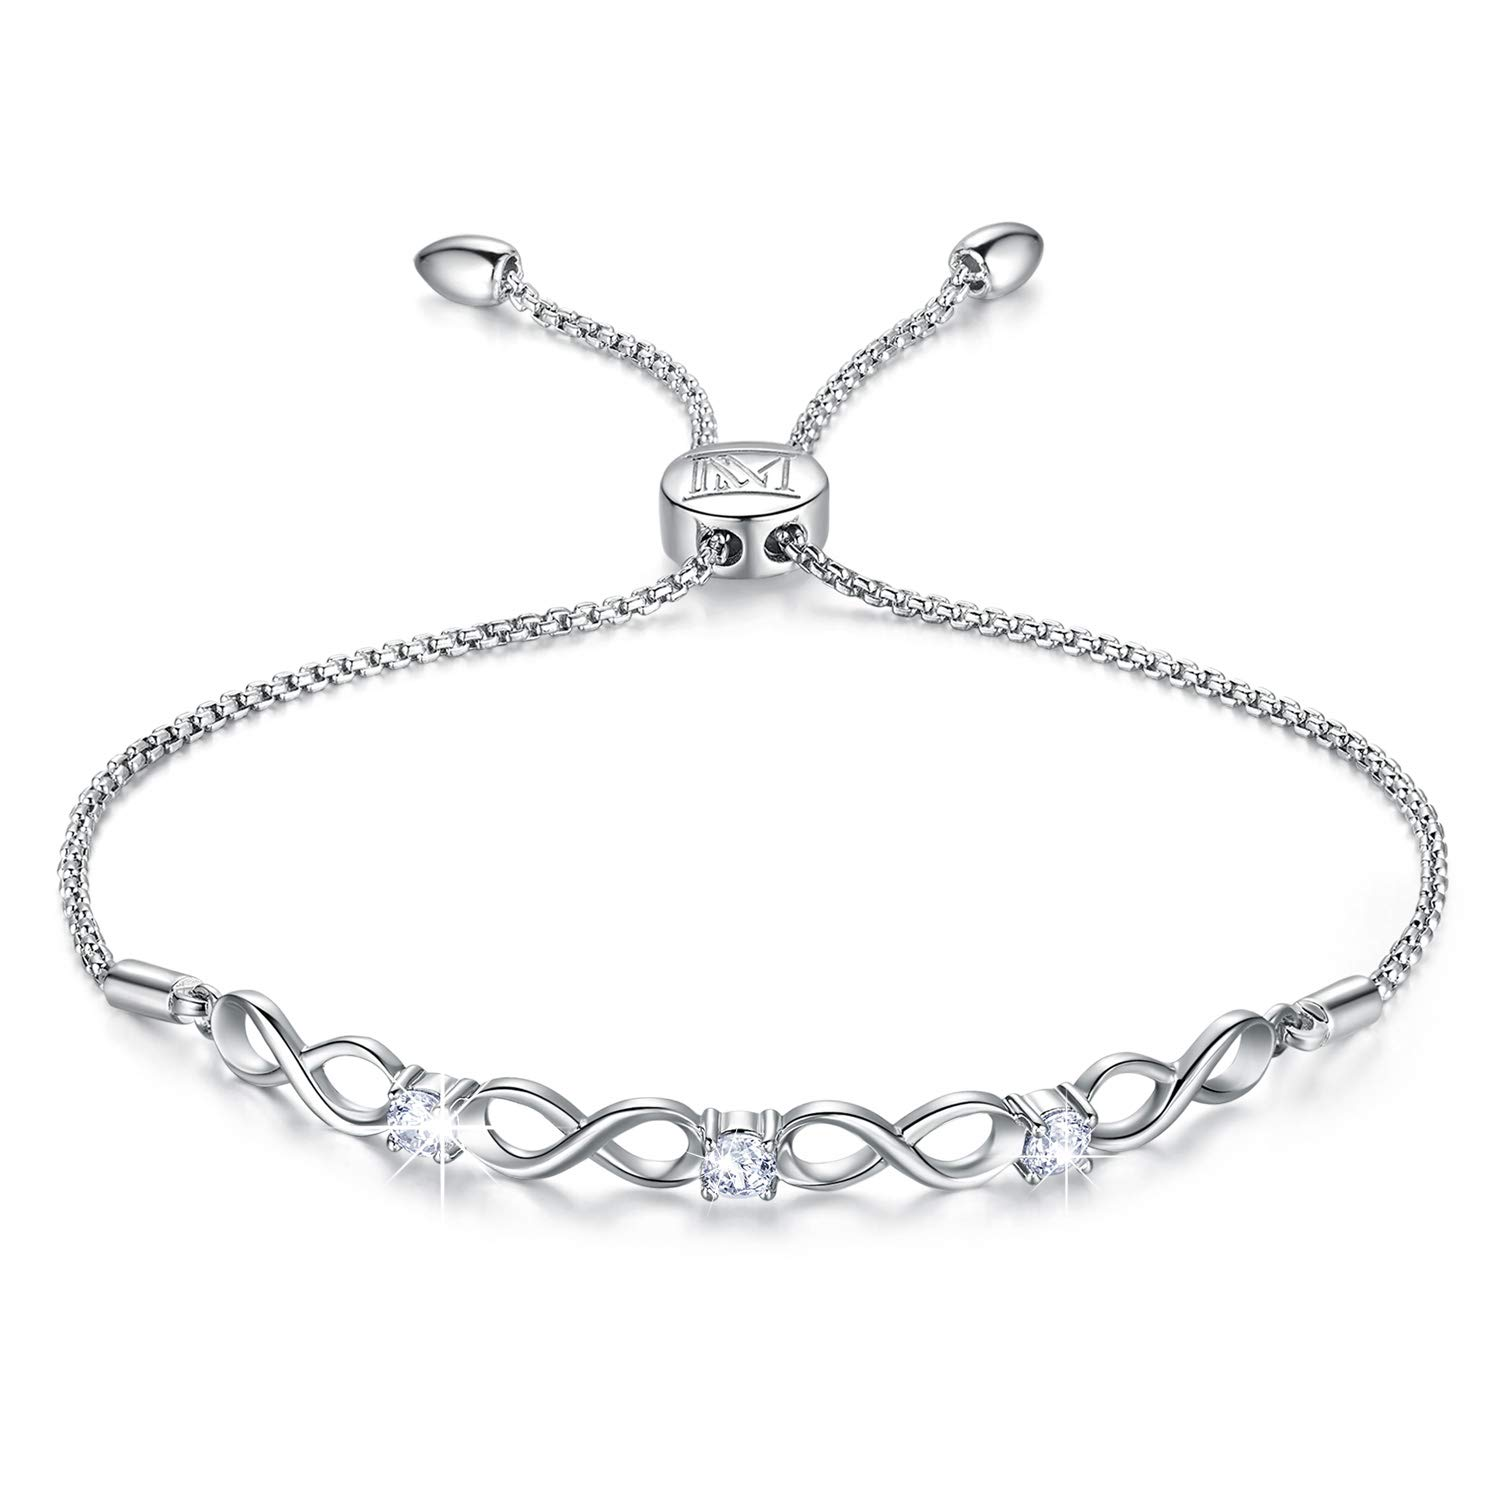 NINAMAID Womens 925 Sterling Silver Bracelet Jewelry Adjustable Women Cubic Zirconia Bolo Bracelet with Sparkling Round-Cut Zirconia in White Gold Plated by NINAMAID